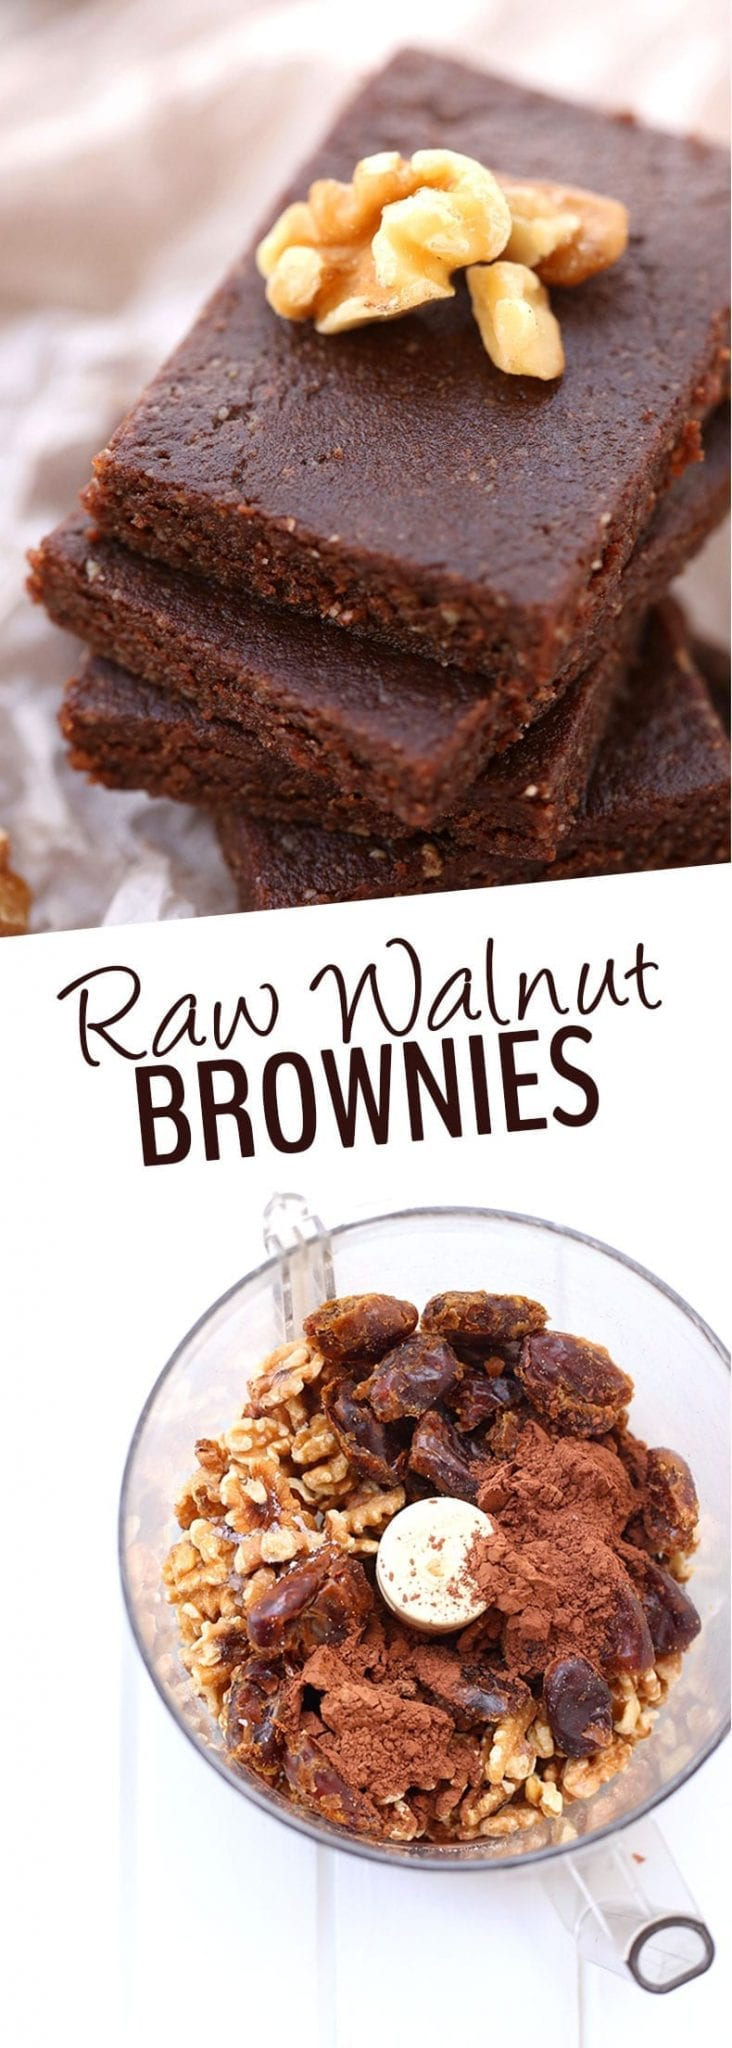 4 ingredients is all you need to make these Raw Walnut Brownies. They're gluten-free, vegan, paleo and refined-sugar-free but also taste incredible! #raw #rawbrownies